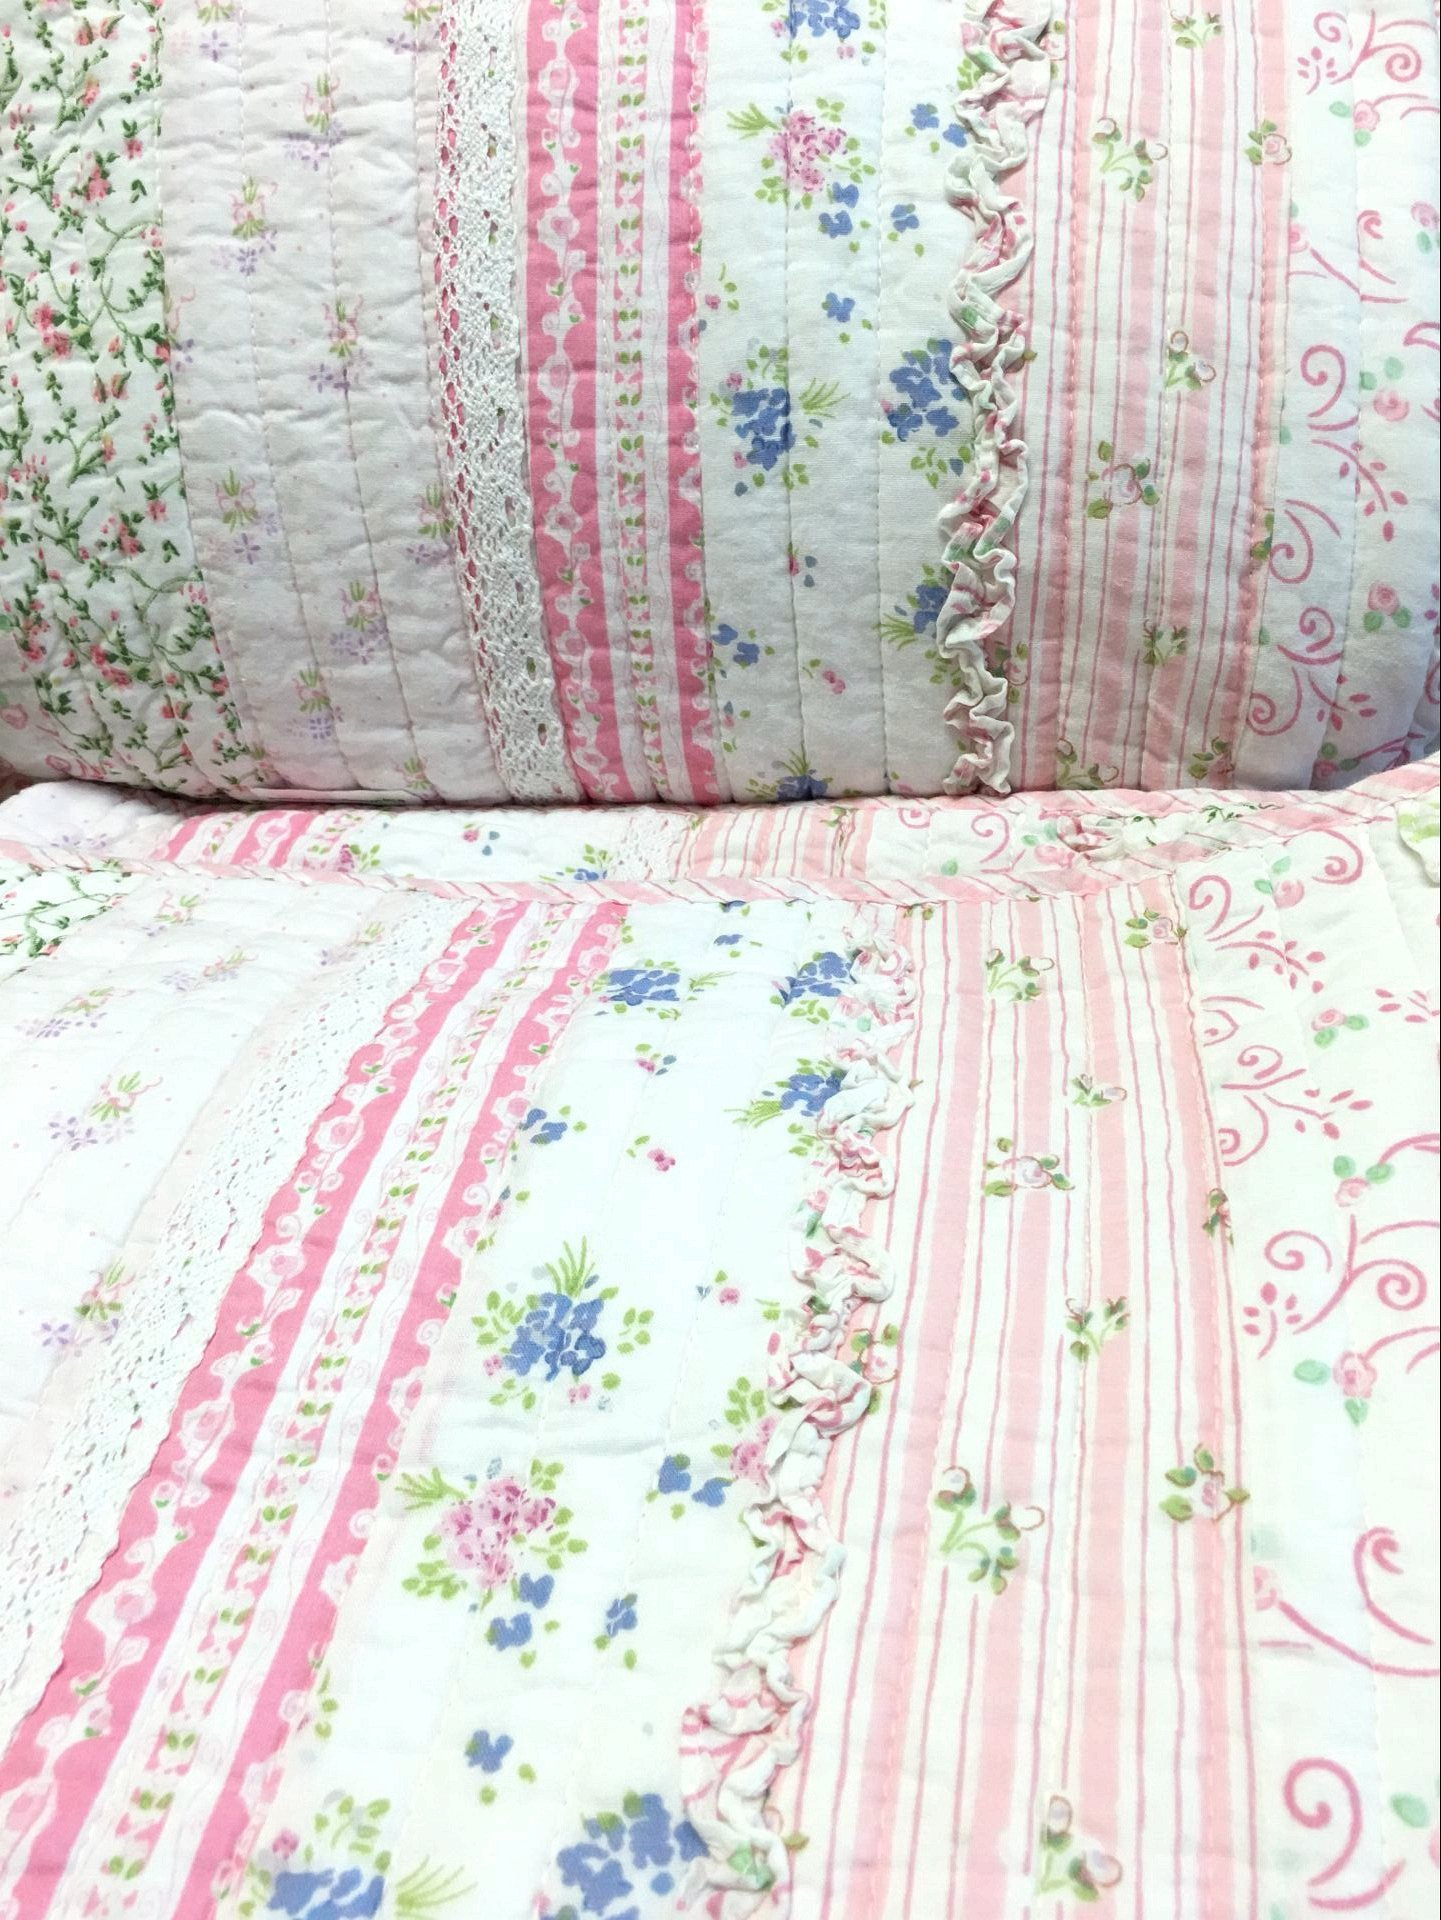 Cozy Line Home Fashions Pink Rose Romantic Chic Lace Bedding Quilt Set, Floral Flower Printed 3D Stripe 100% COTTON Reversible Coverlet Bedspread Gifts for Girls Women (Queen - 3 piece) by Cozy Line Home Fashions (Image #7)